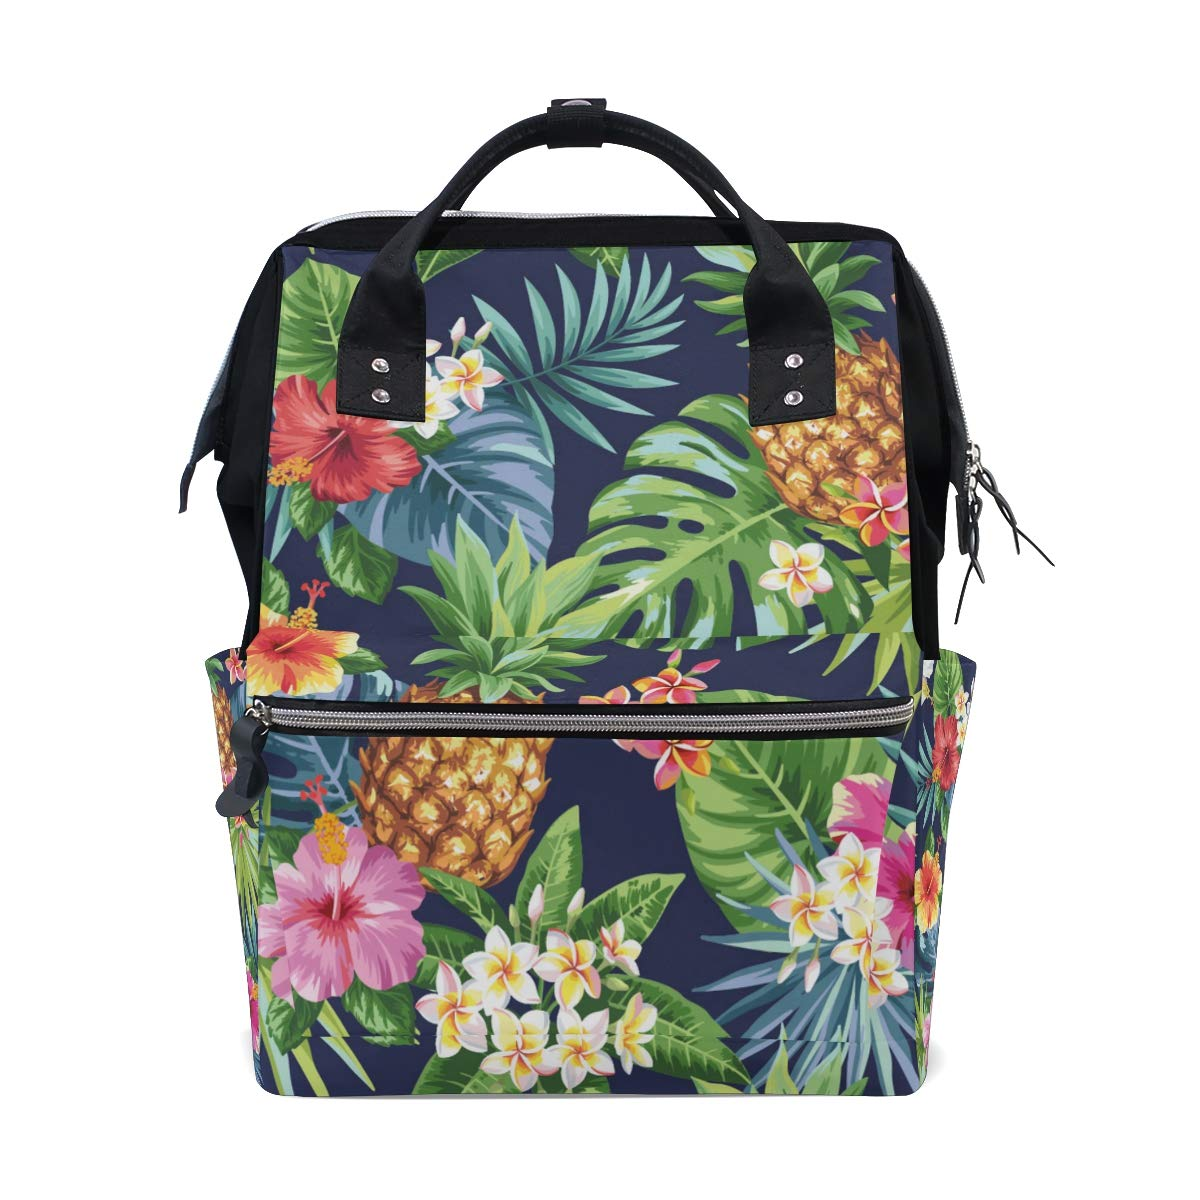 A Seed Backpack Baby Diaper Bag Pineapple Tropical Flowers for Girls Women Tote Daypack Bookbag